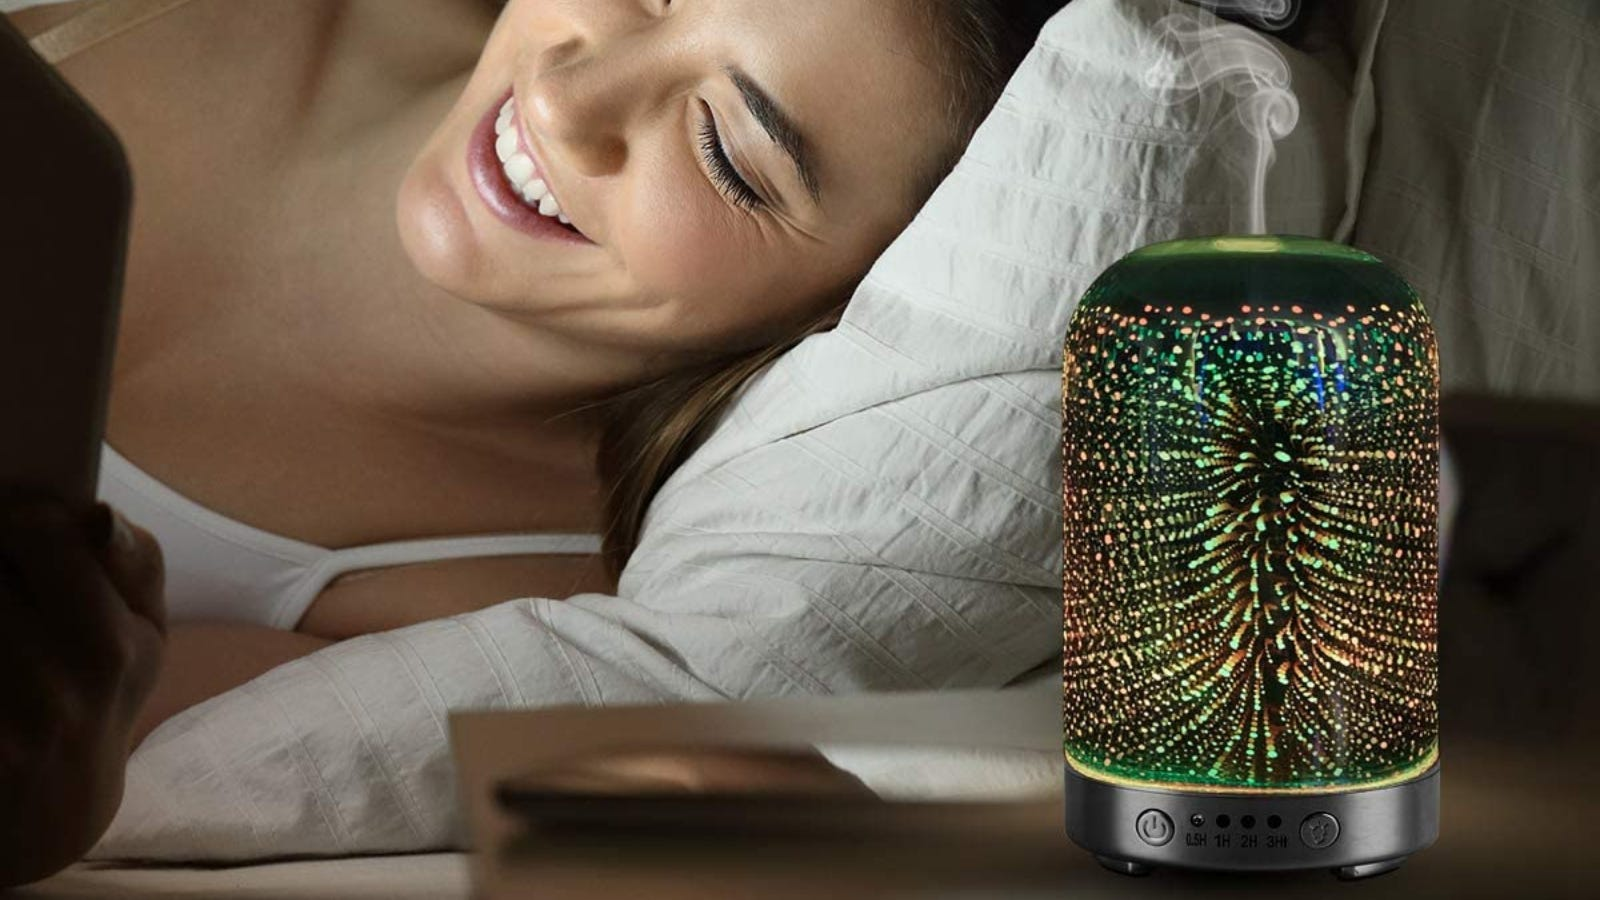 A women laying on a pillow is smiling at her phone and a colorful glass diffuser sits on her side table.